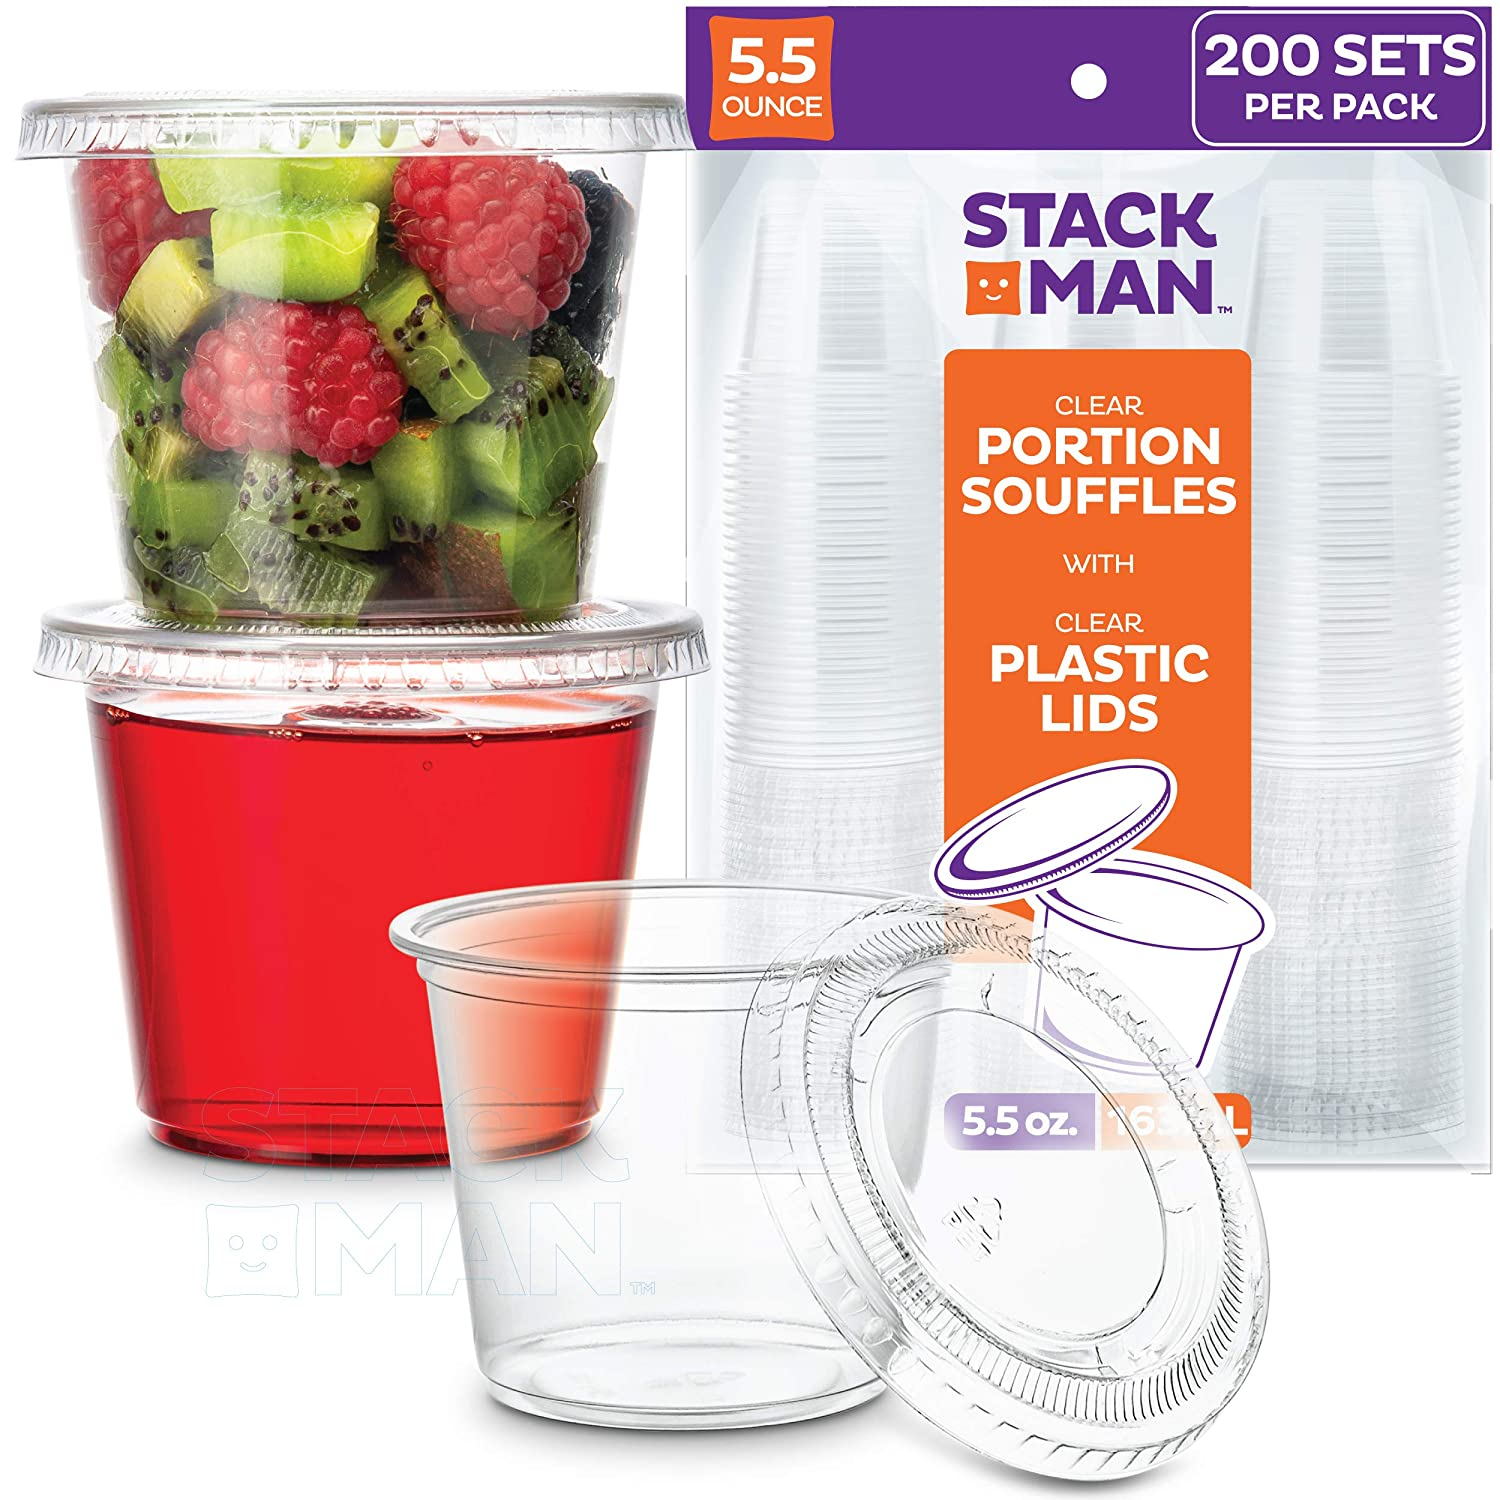 [200 Sets - 5.5 oz.] Plastic Cups with Lids, Clear Portion Cups, Disposable Snack Cups, Yogurt Cups, Parfait Cups, Pudding Cups, Souffle Cups, Dessert Cups, Disposable Containers with Lids 5.5oz.